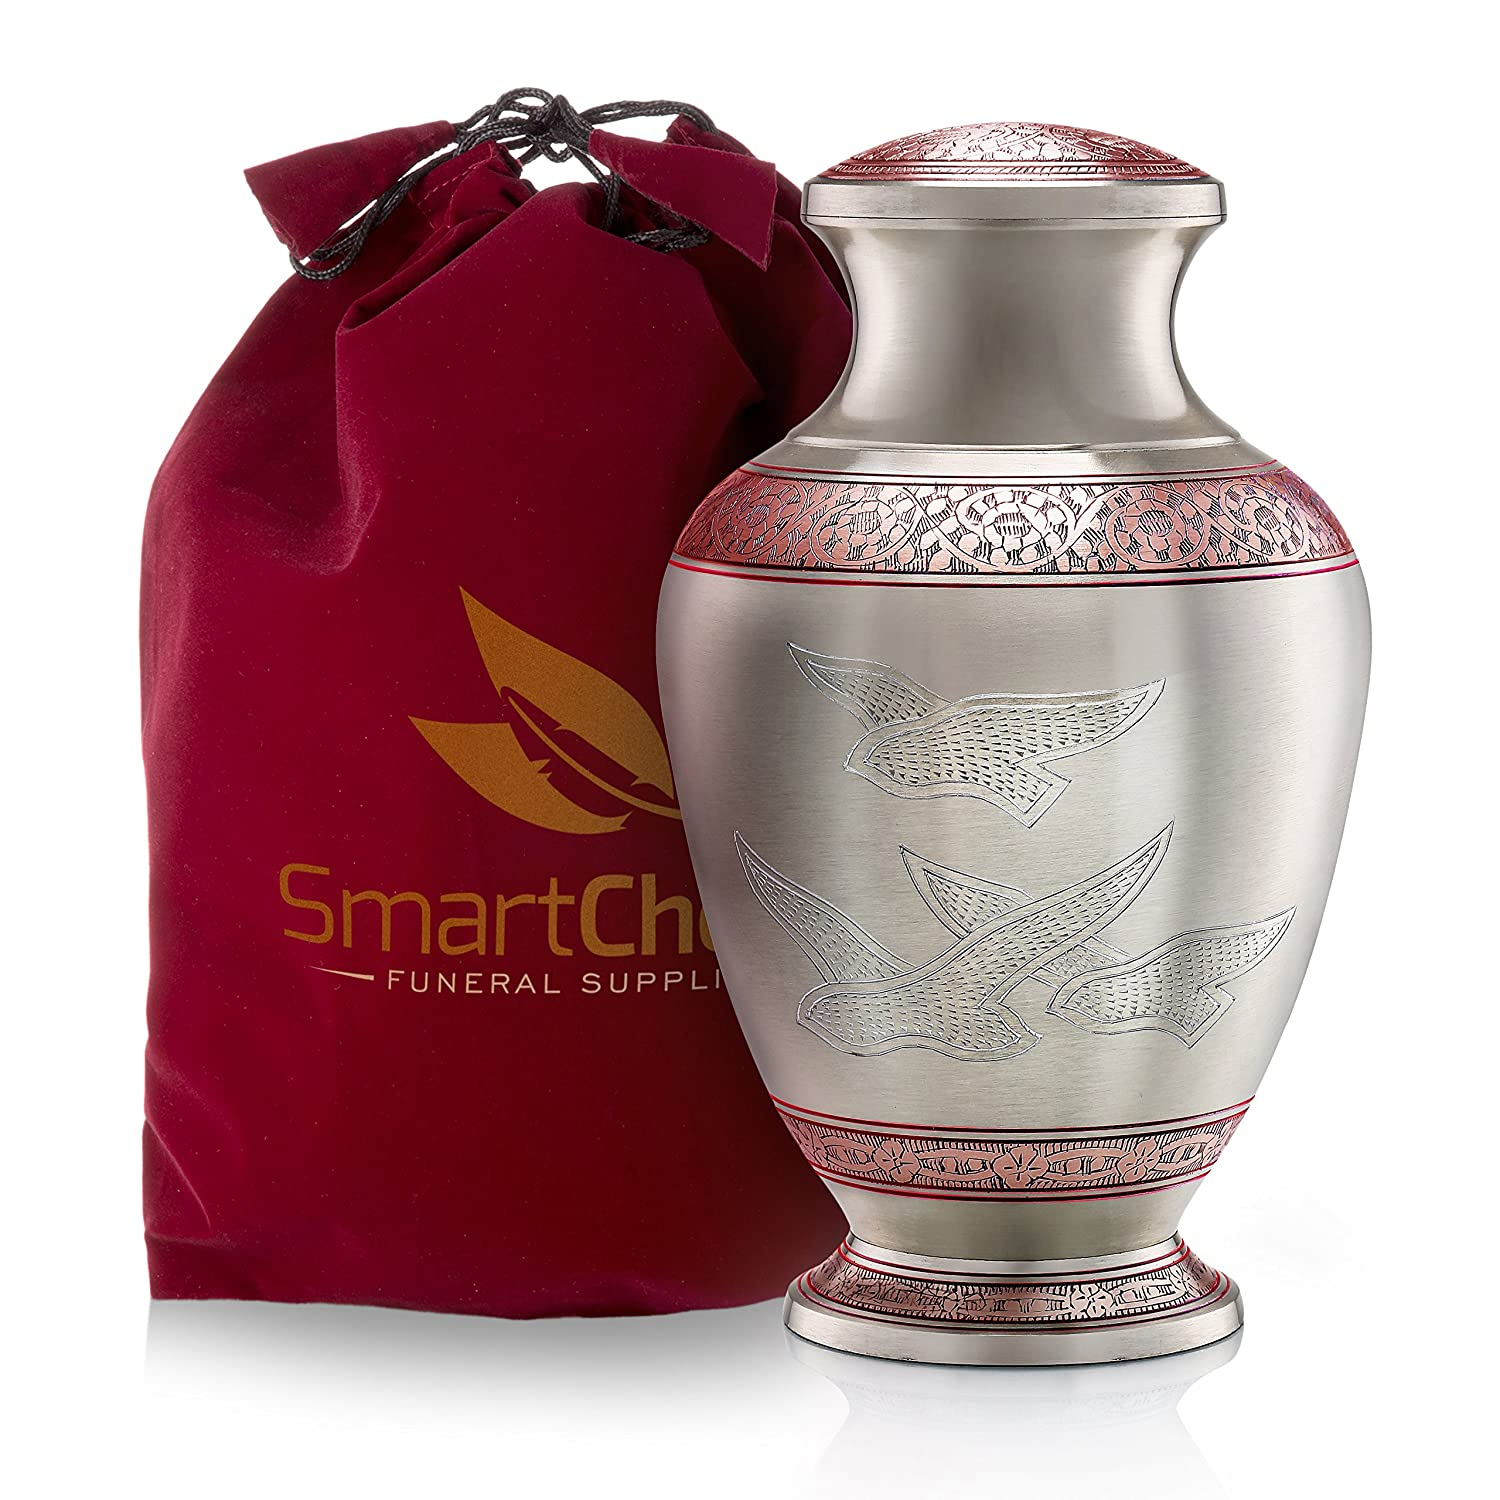 SmartChoice Wings of Freedom Brass Cremation Urn for Human Ashes – Handcrafted Funeral Memorial Urn with Dove Motif in Elegant Red (Adult)